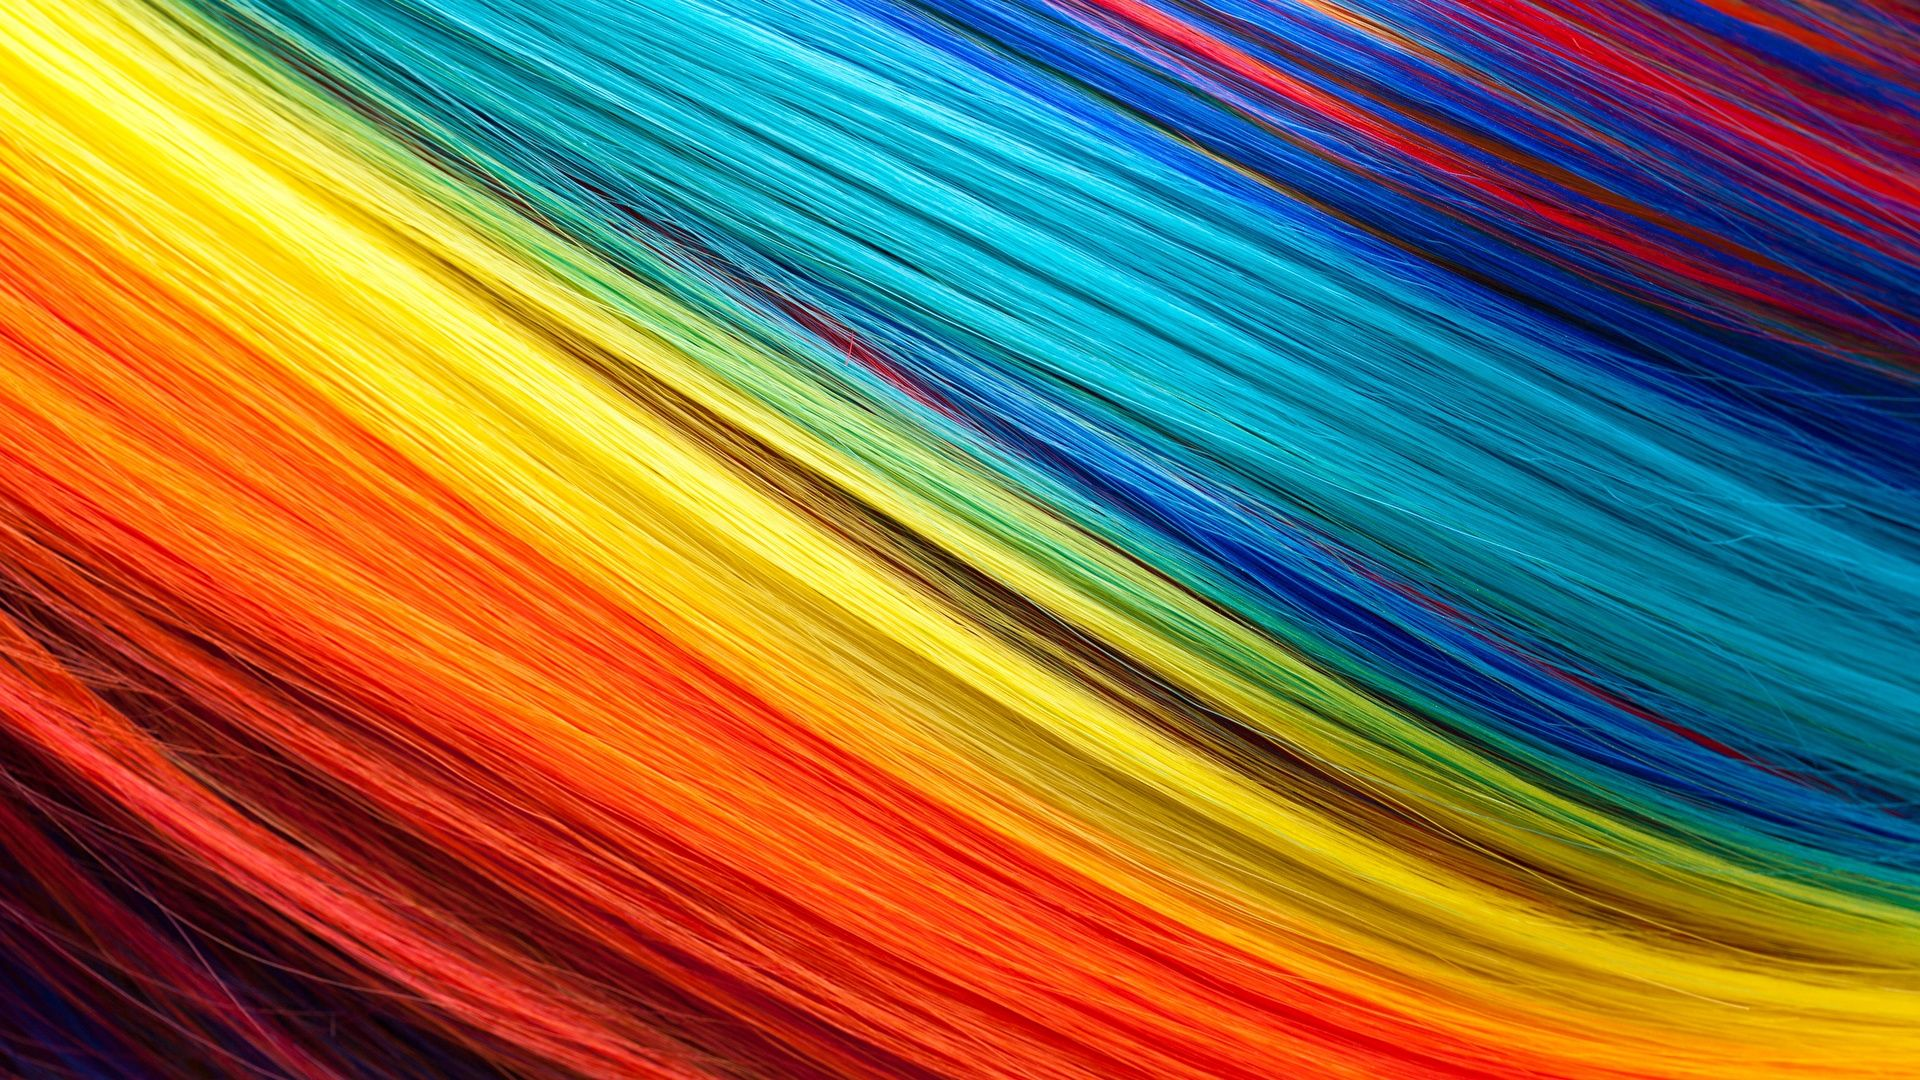 Rainbow download free wallpaper image search